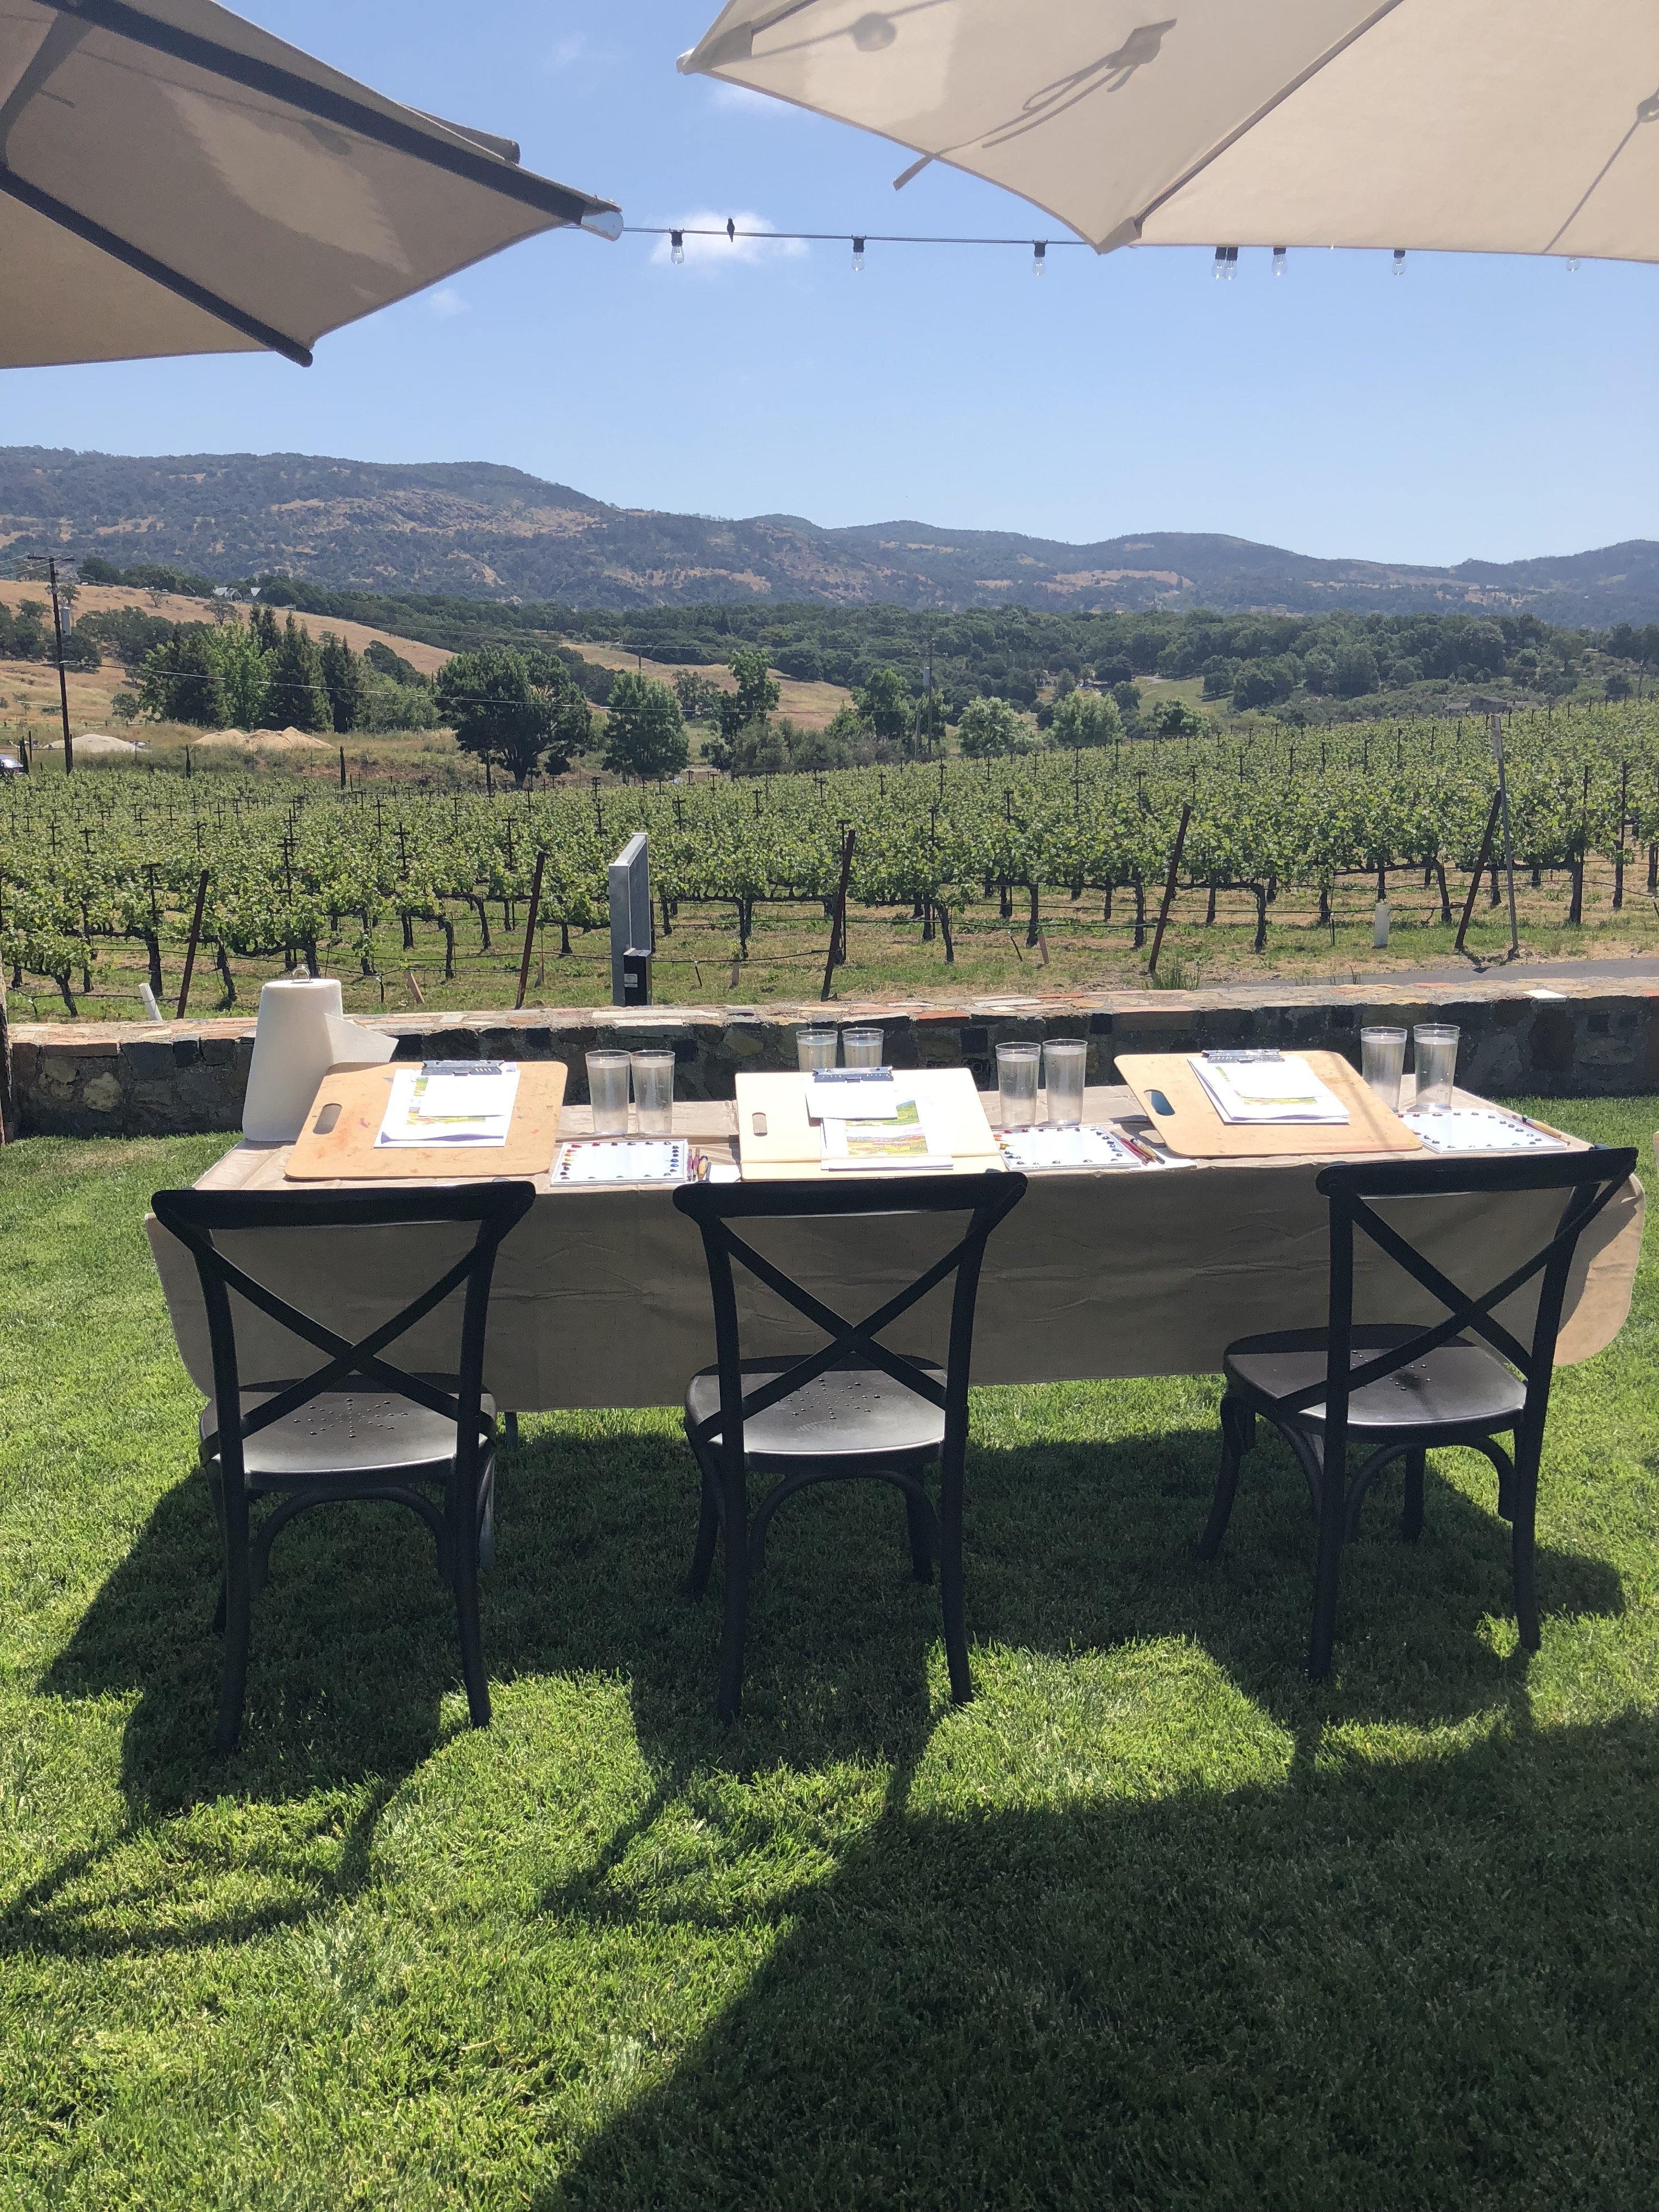 Getting ready to paint the vineyards